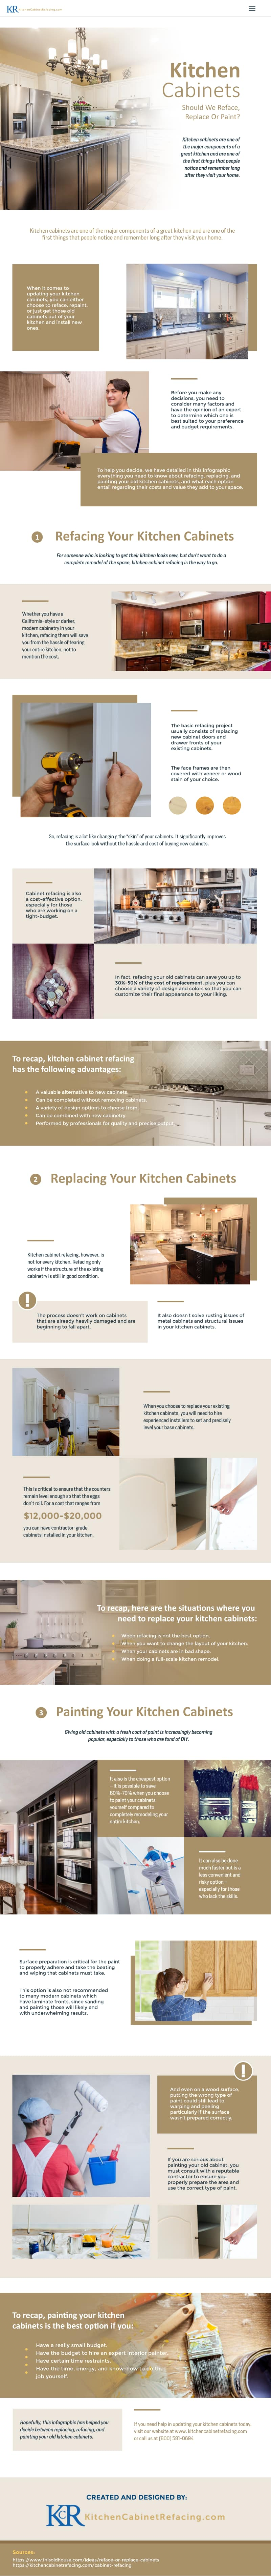 Kitchen Cabinets Should we Reface Replace or Paint